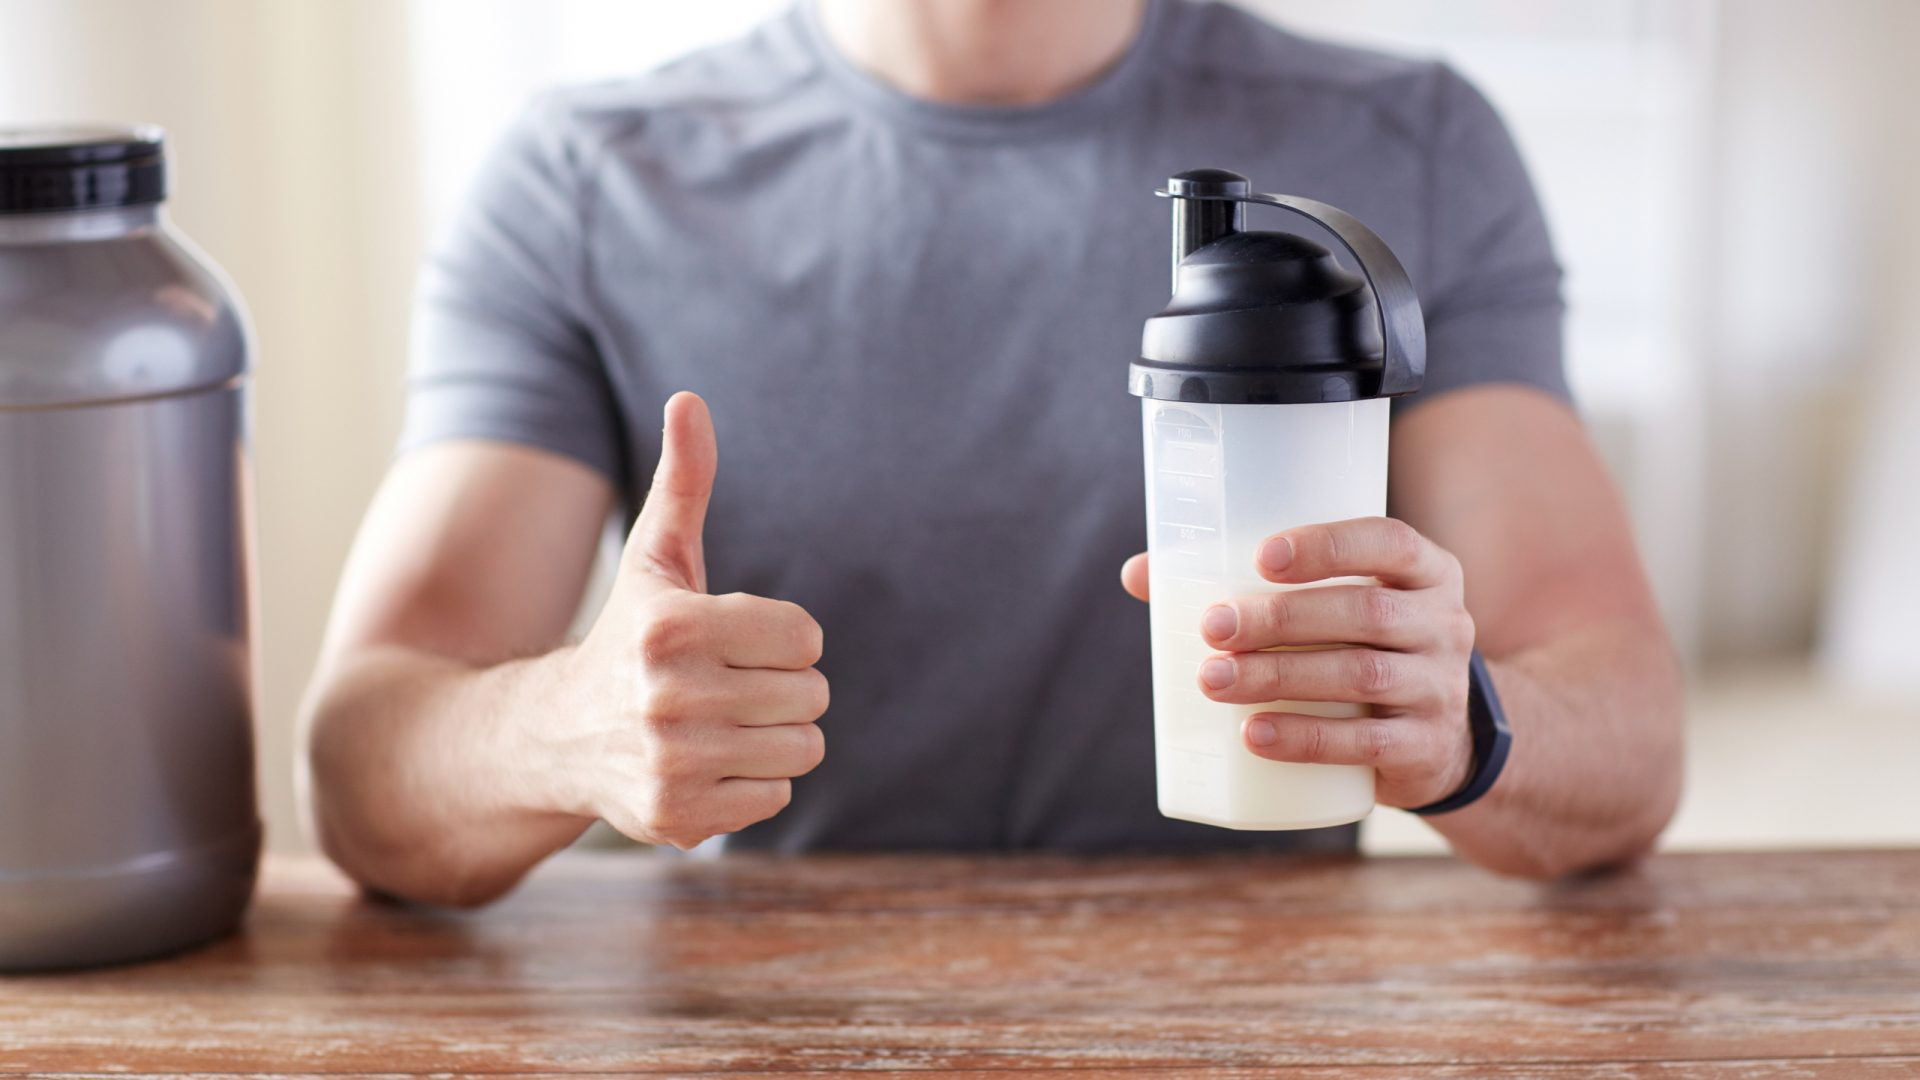 minimising the risks with supplements